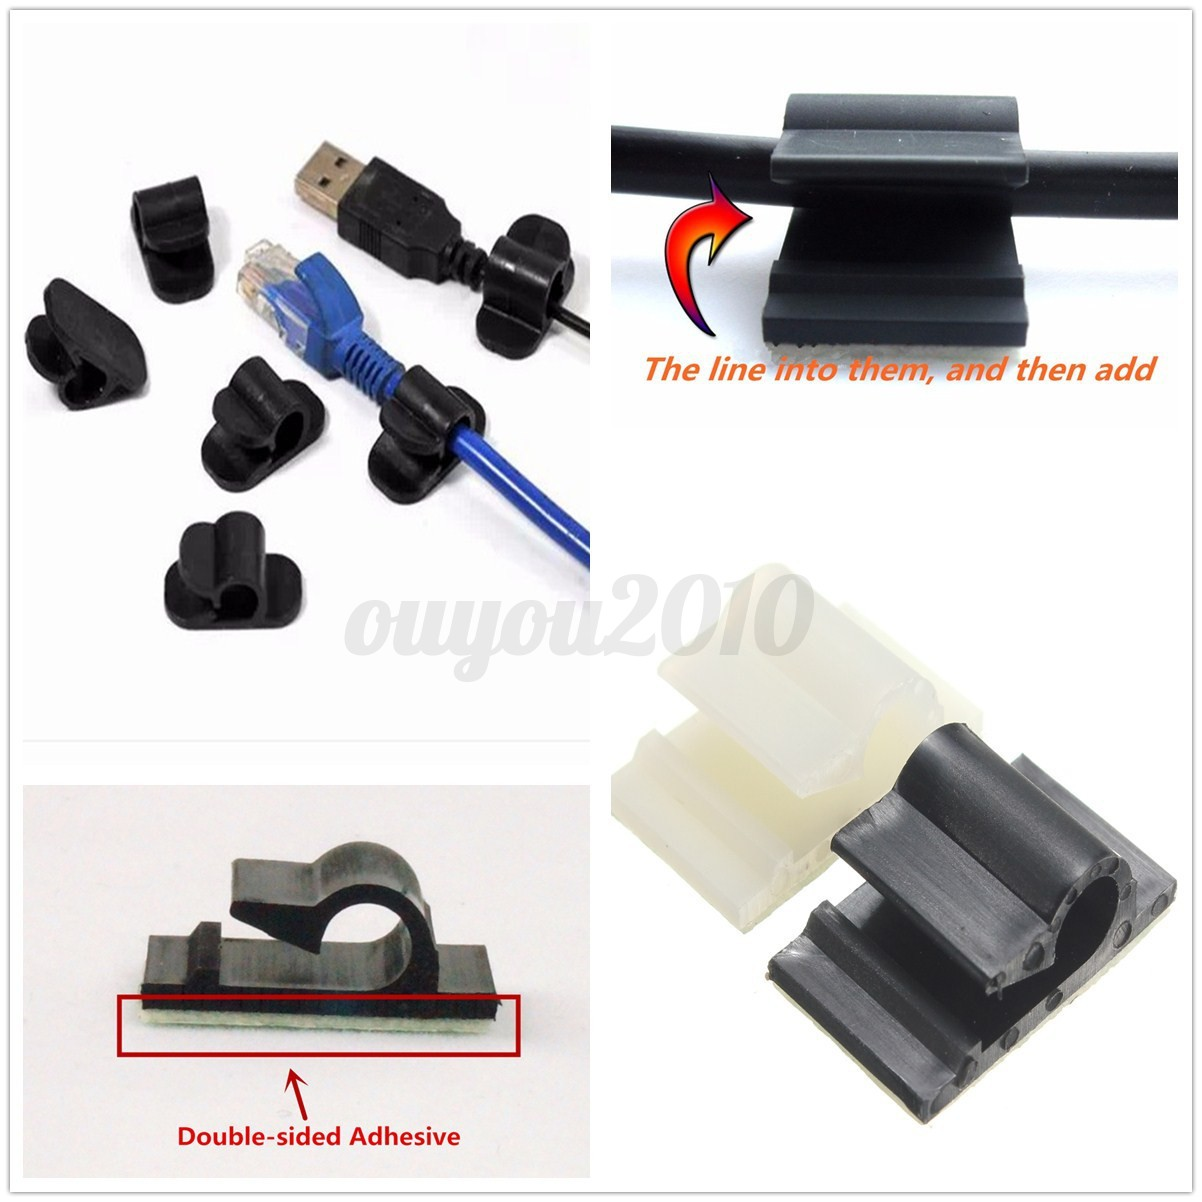 Pcs self adhesive home car wire tie clips fixing nail